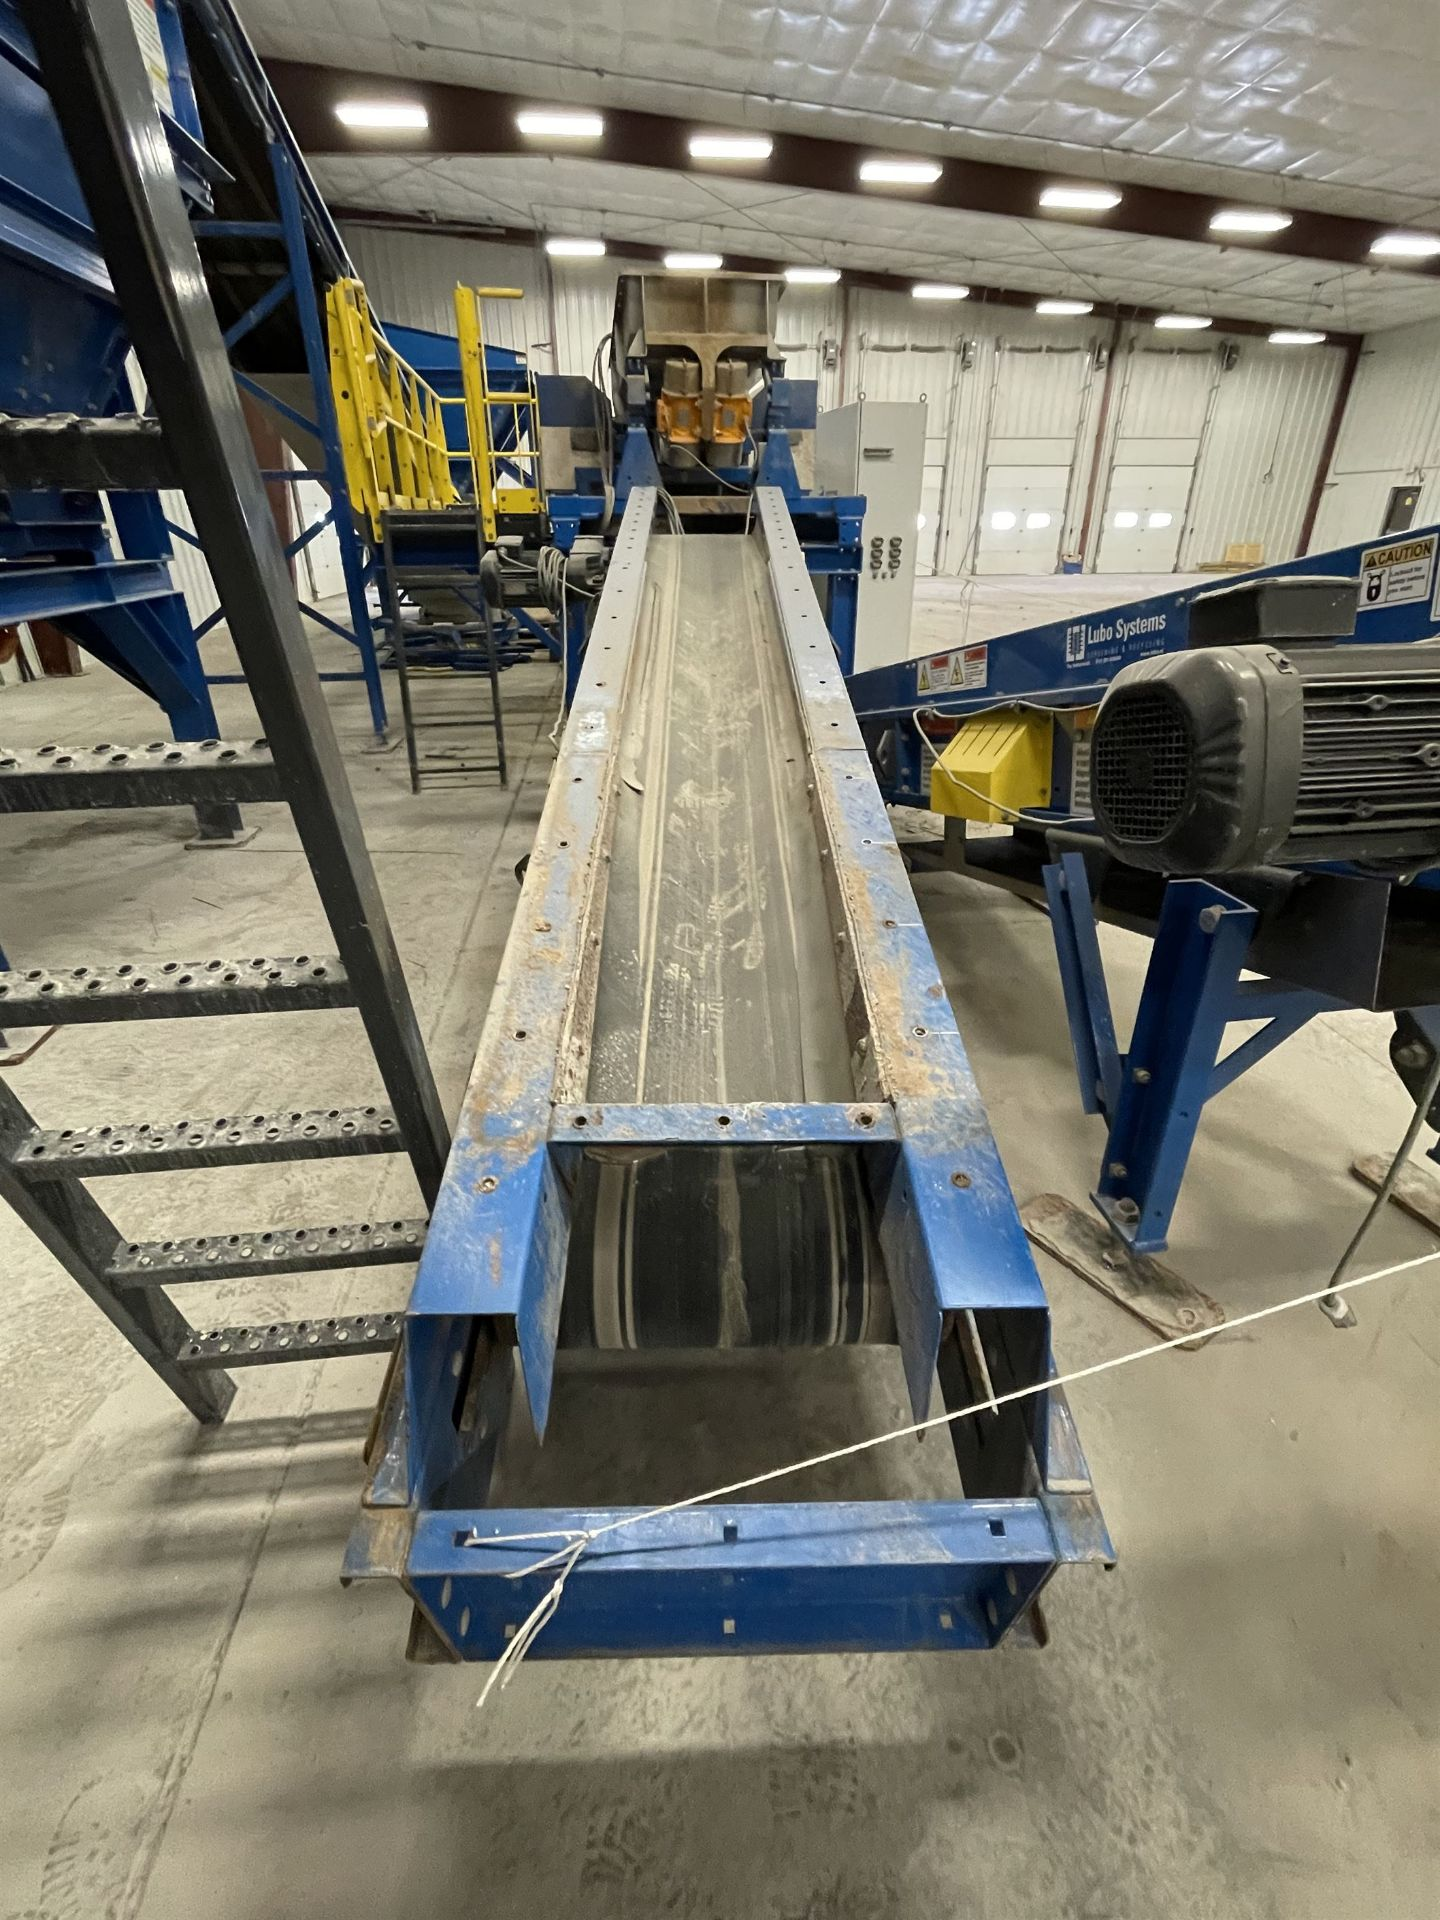 2015 LUBO SYSTEMS TBL 600x3500 Inclined Belt Conveyor, s/n 800108-0280, 600mm x 3500mm, SEW 3.7 kW - Image 4 of 5